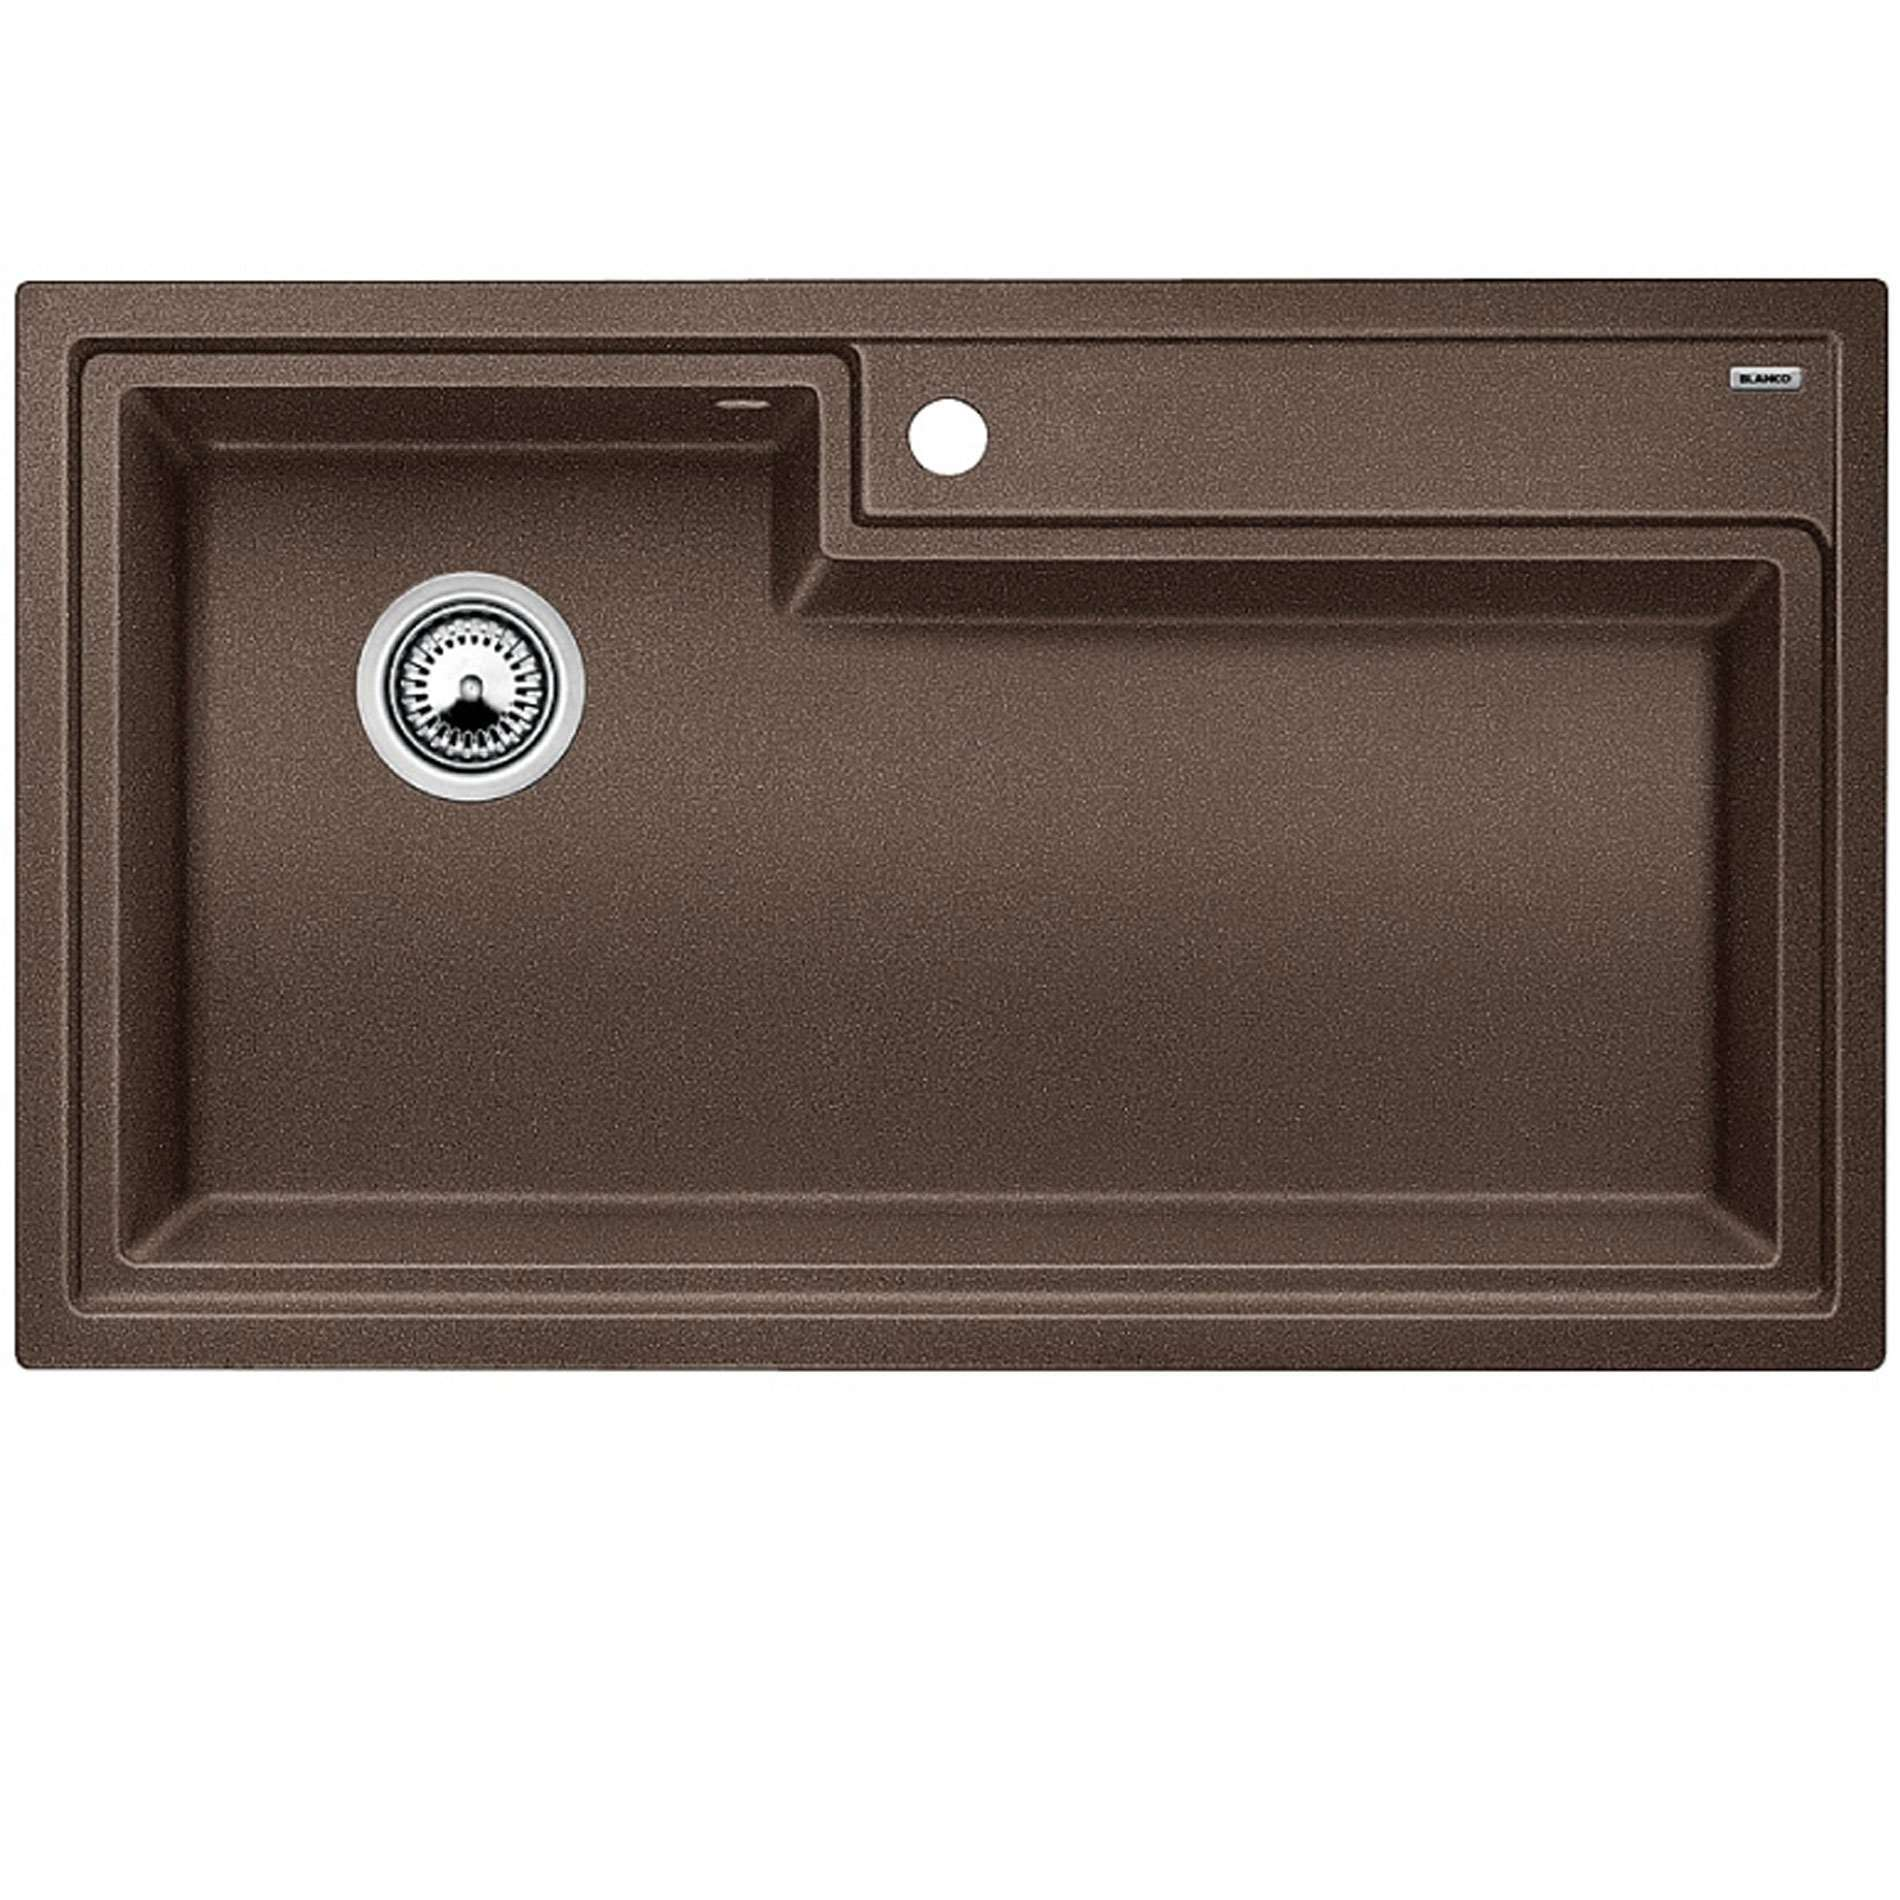 brands of sinks befon for